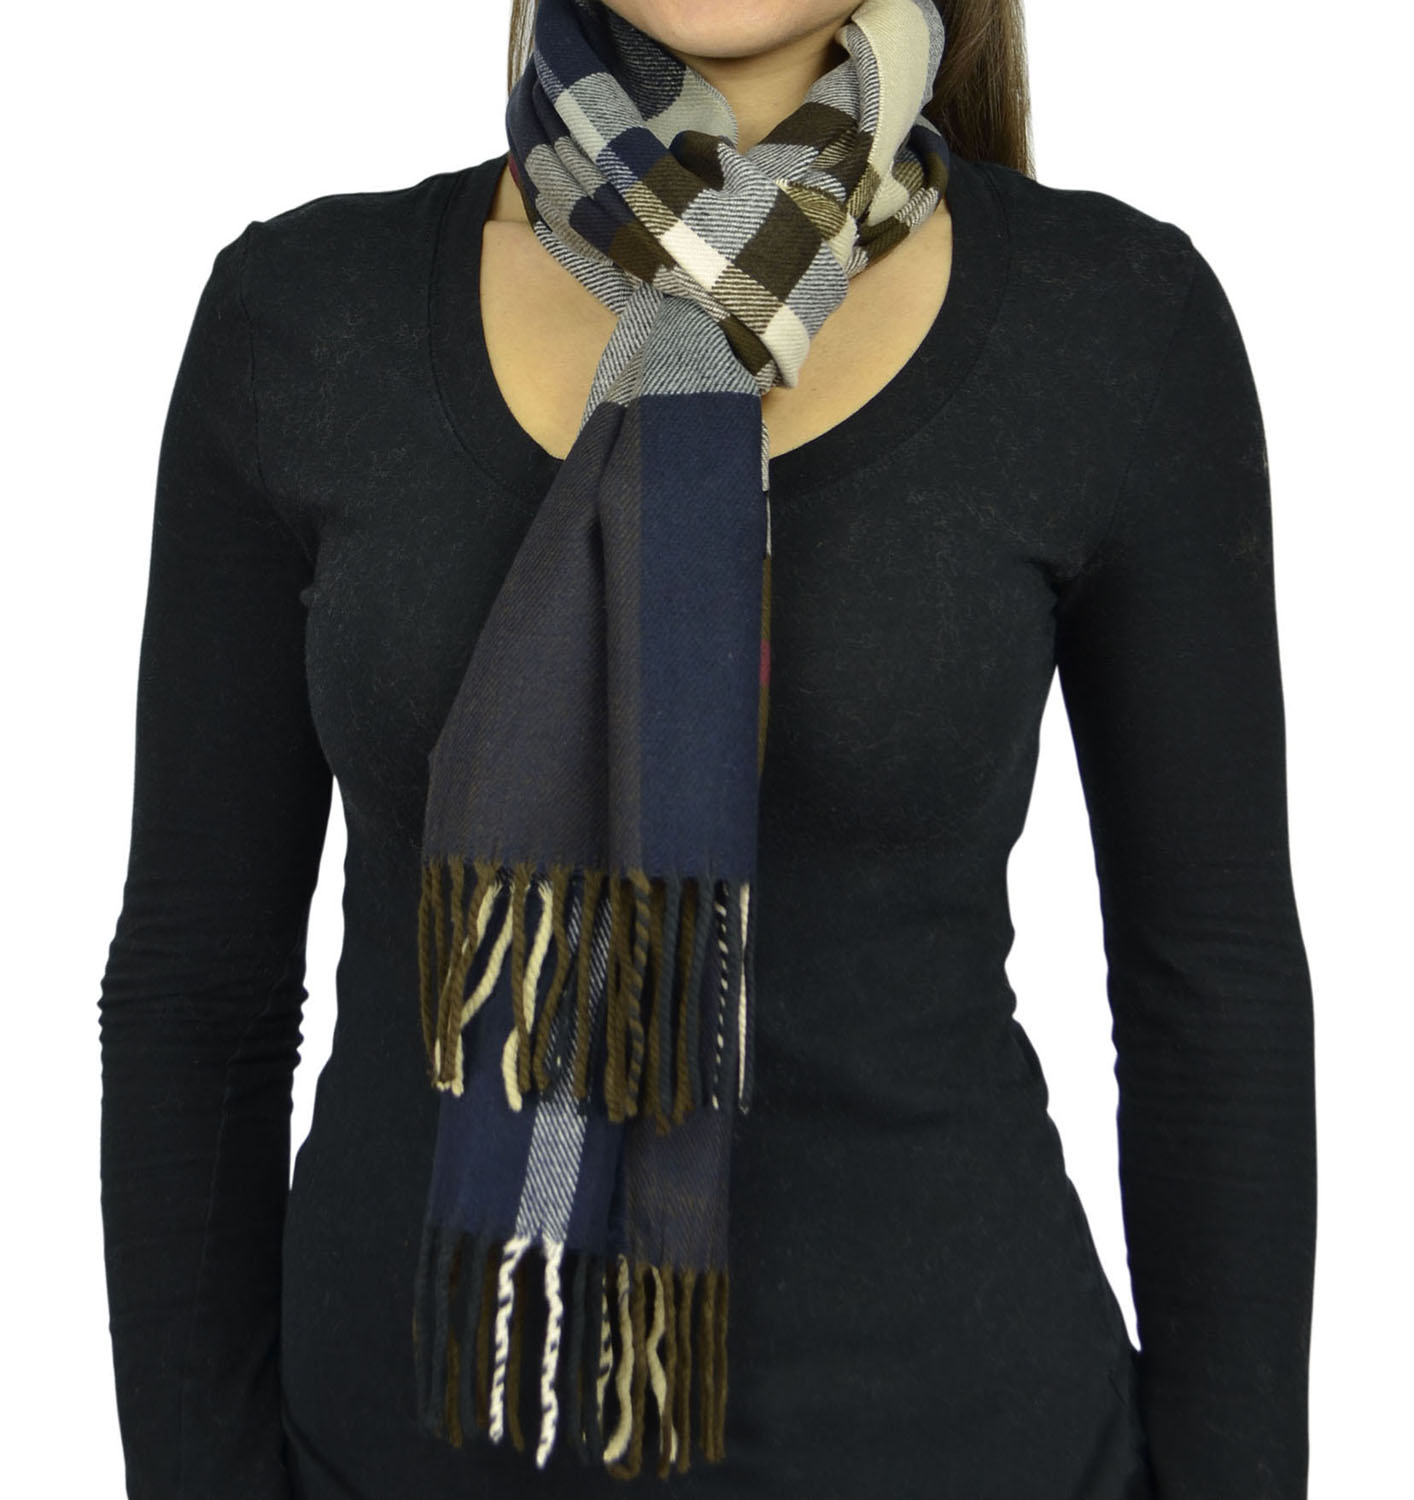 Belle Donne- Unisex Cashmere Feel Scarf - Plaid / Warm Winter Fashion Scarves - Navy